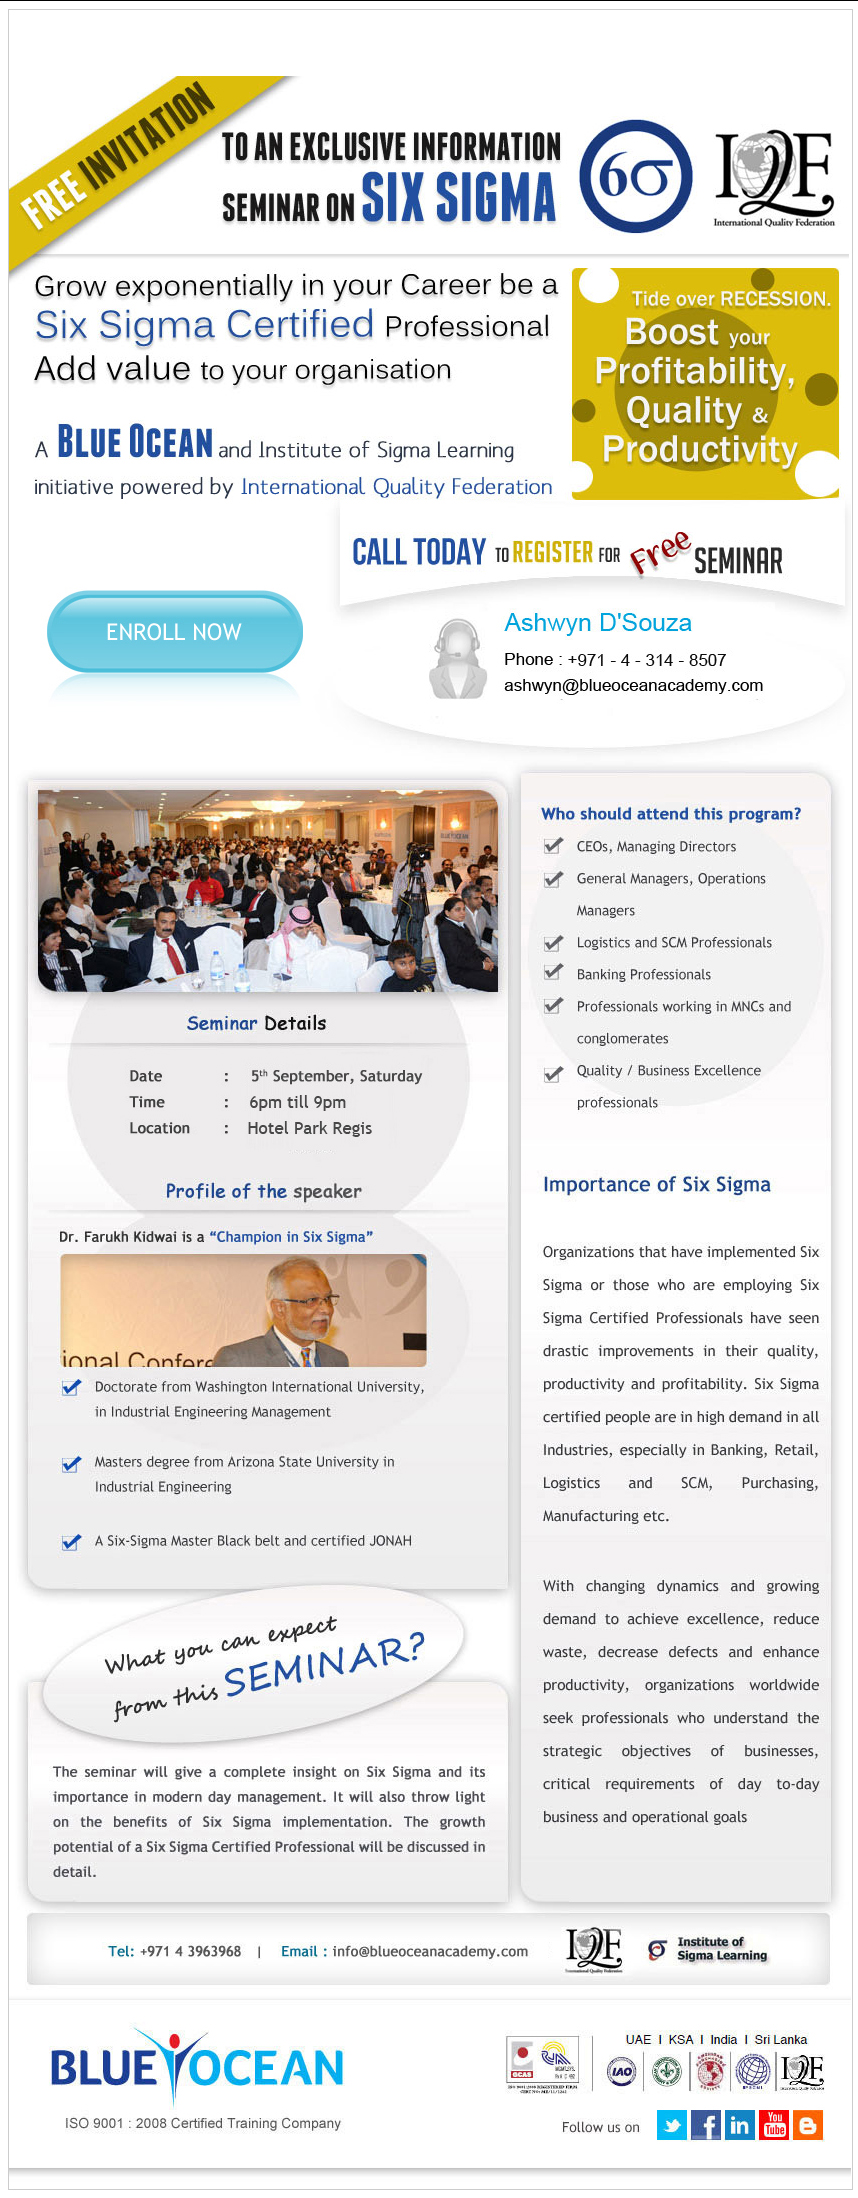 To An Exclusive Information Seminar On Six Sigma